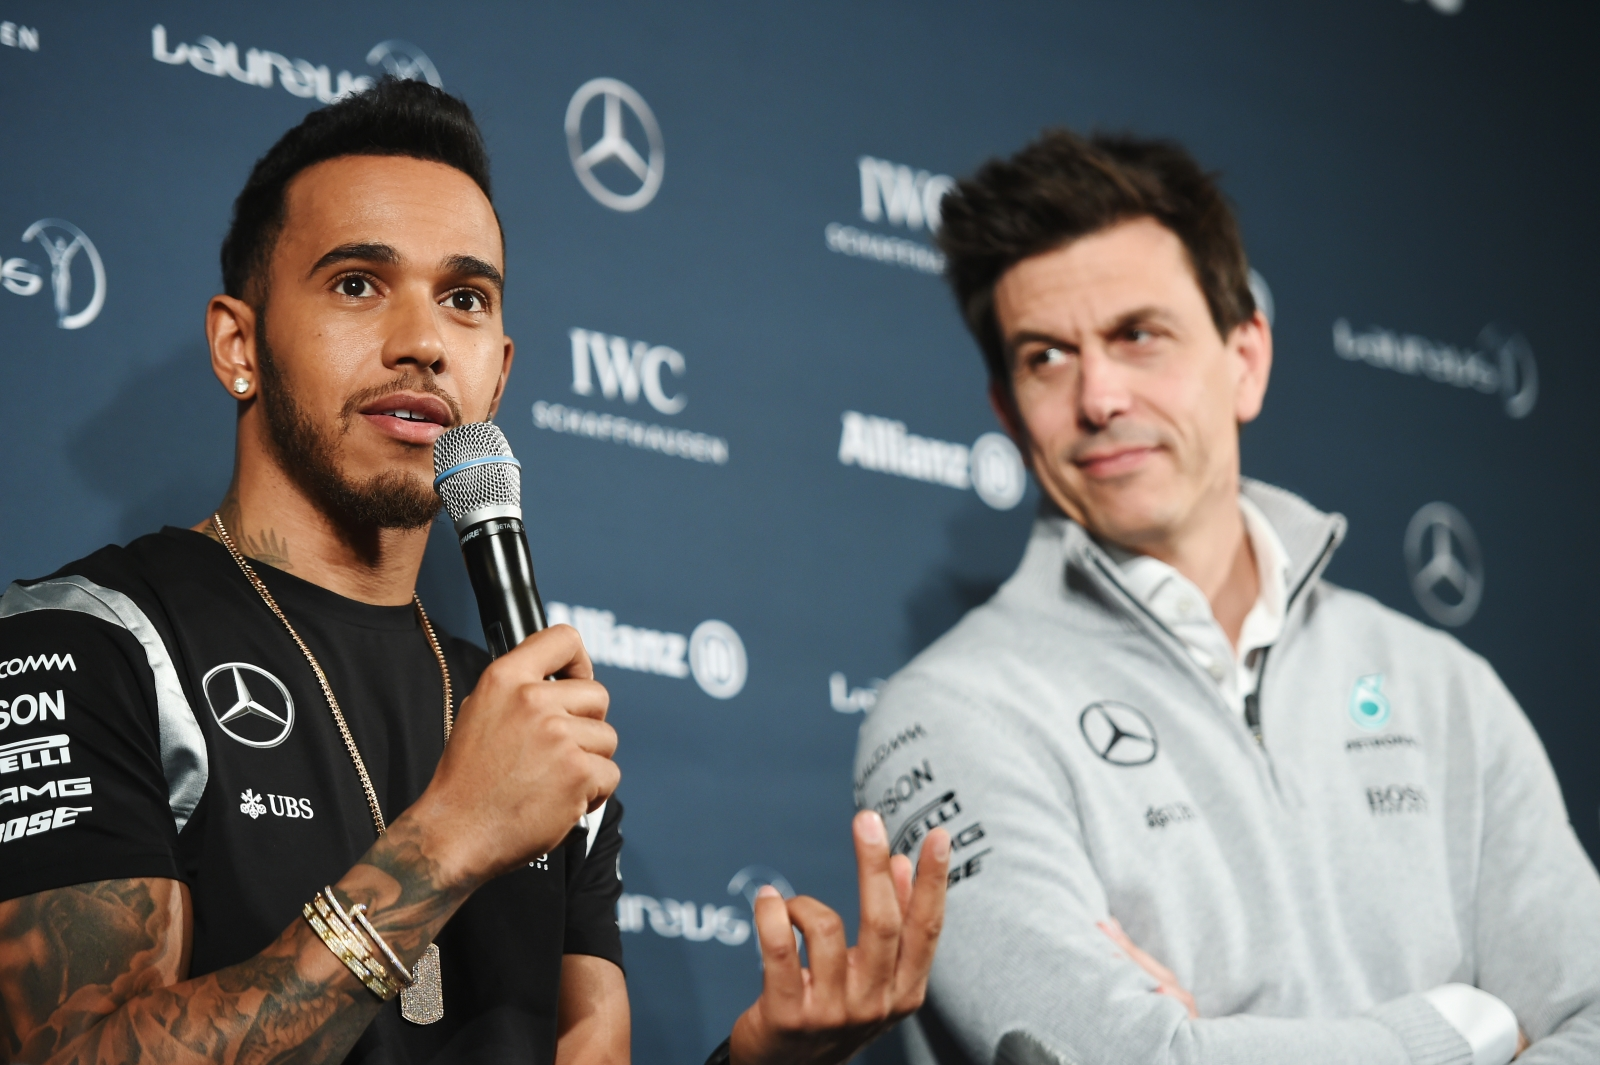 Mercedes no longer the favorite in F1, Wolff says